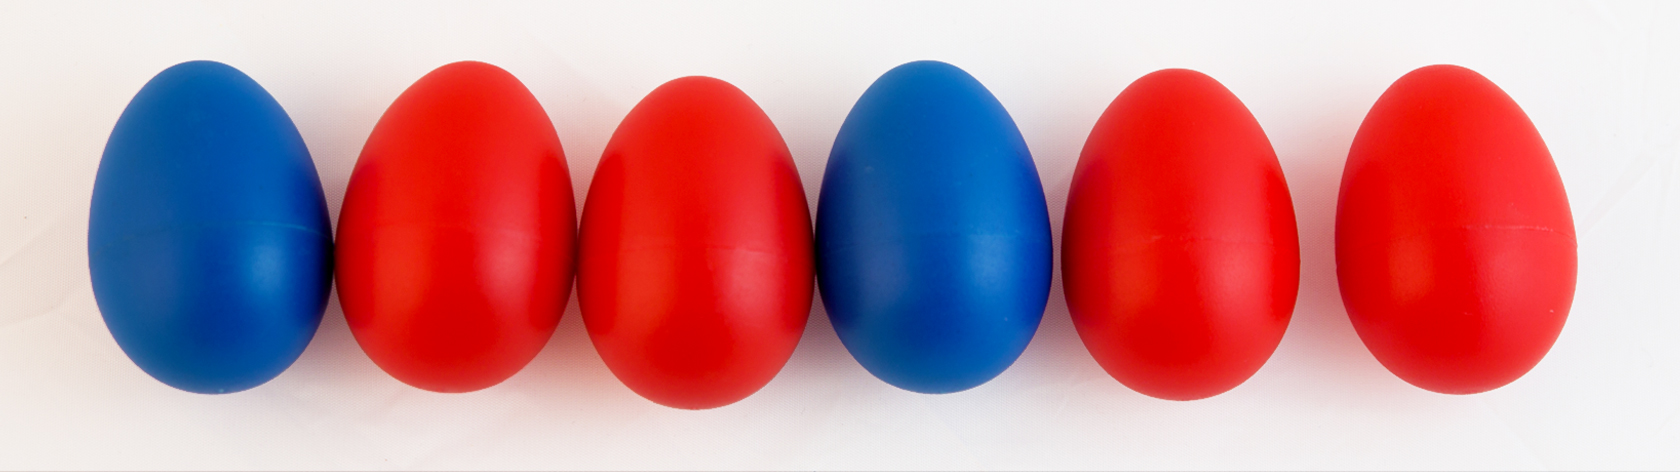 Red and blue plastic eggs organized in a pattern